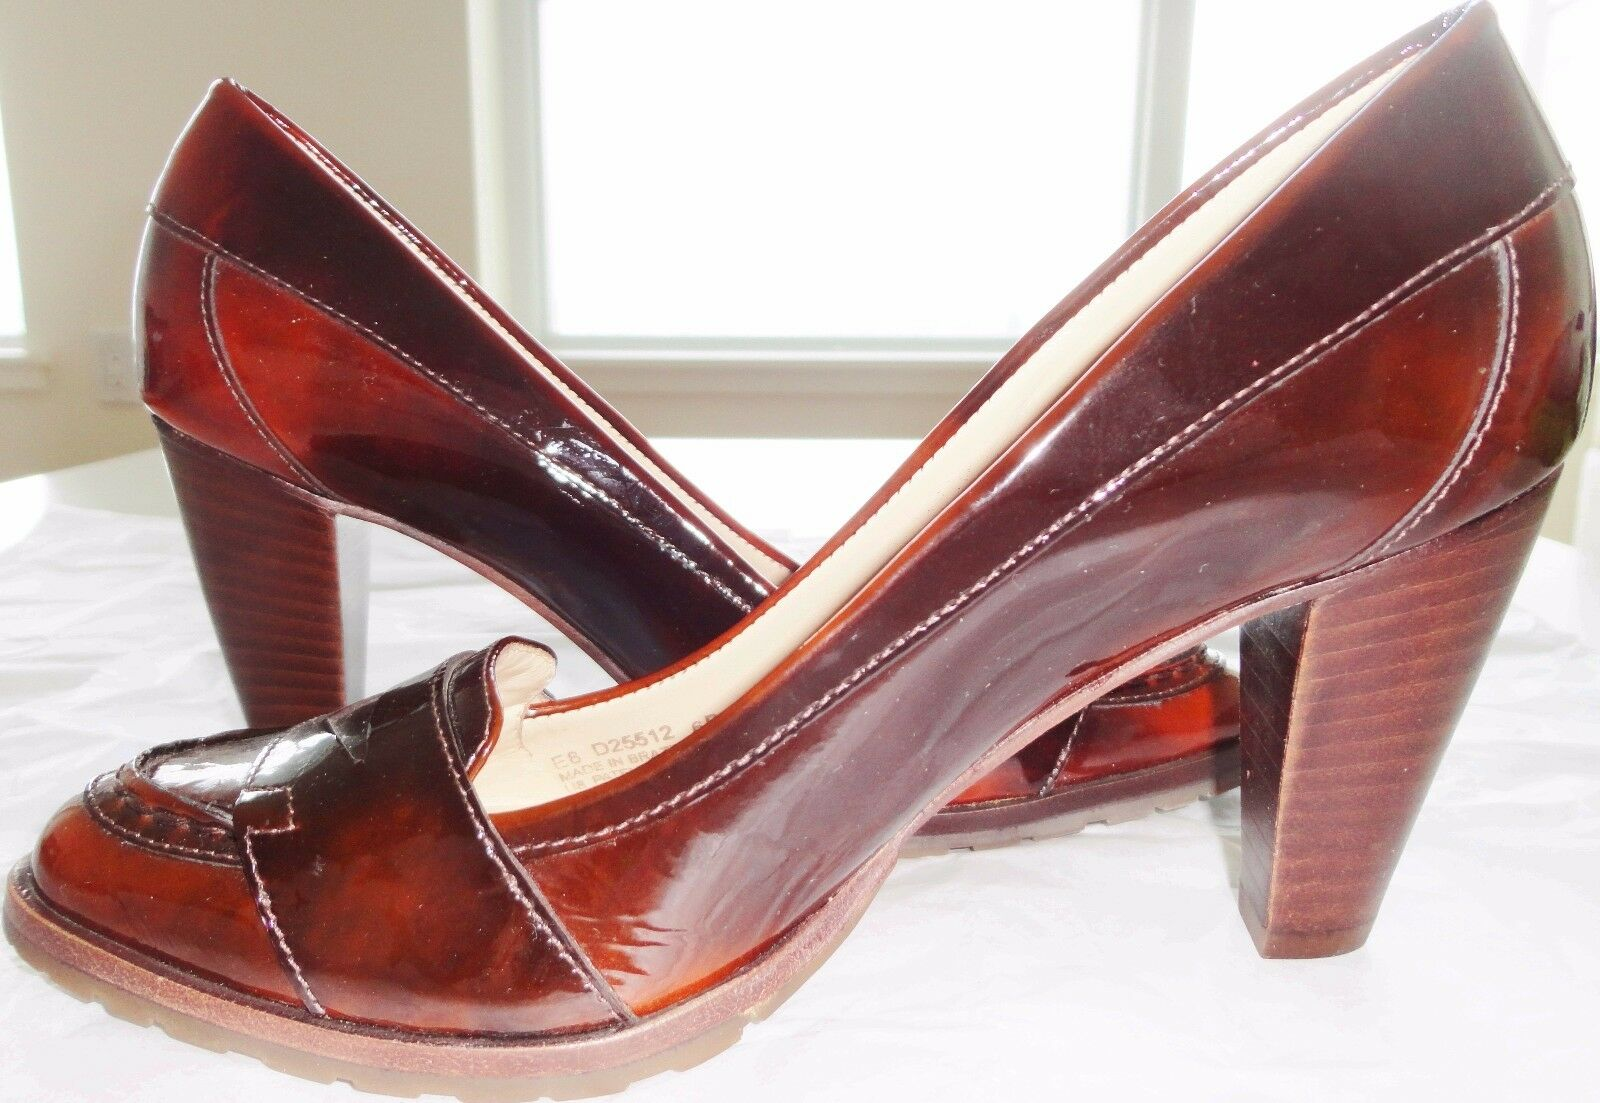 COLE HAAN LEATHER HIGH HEELS SHOES DESIGNER LIMITED EDITION 100% AUTHENTIC